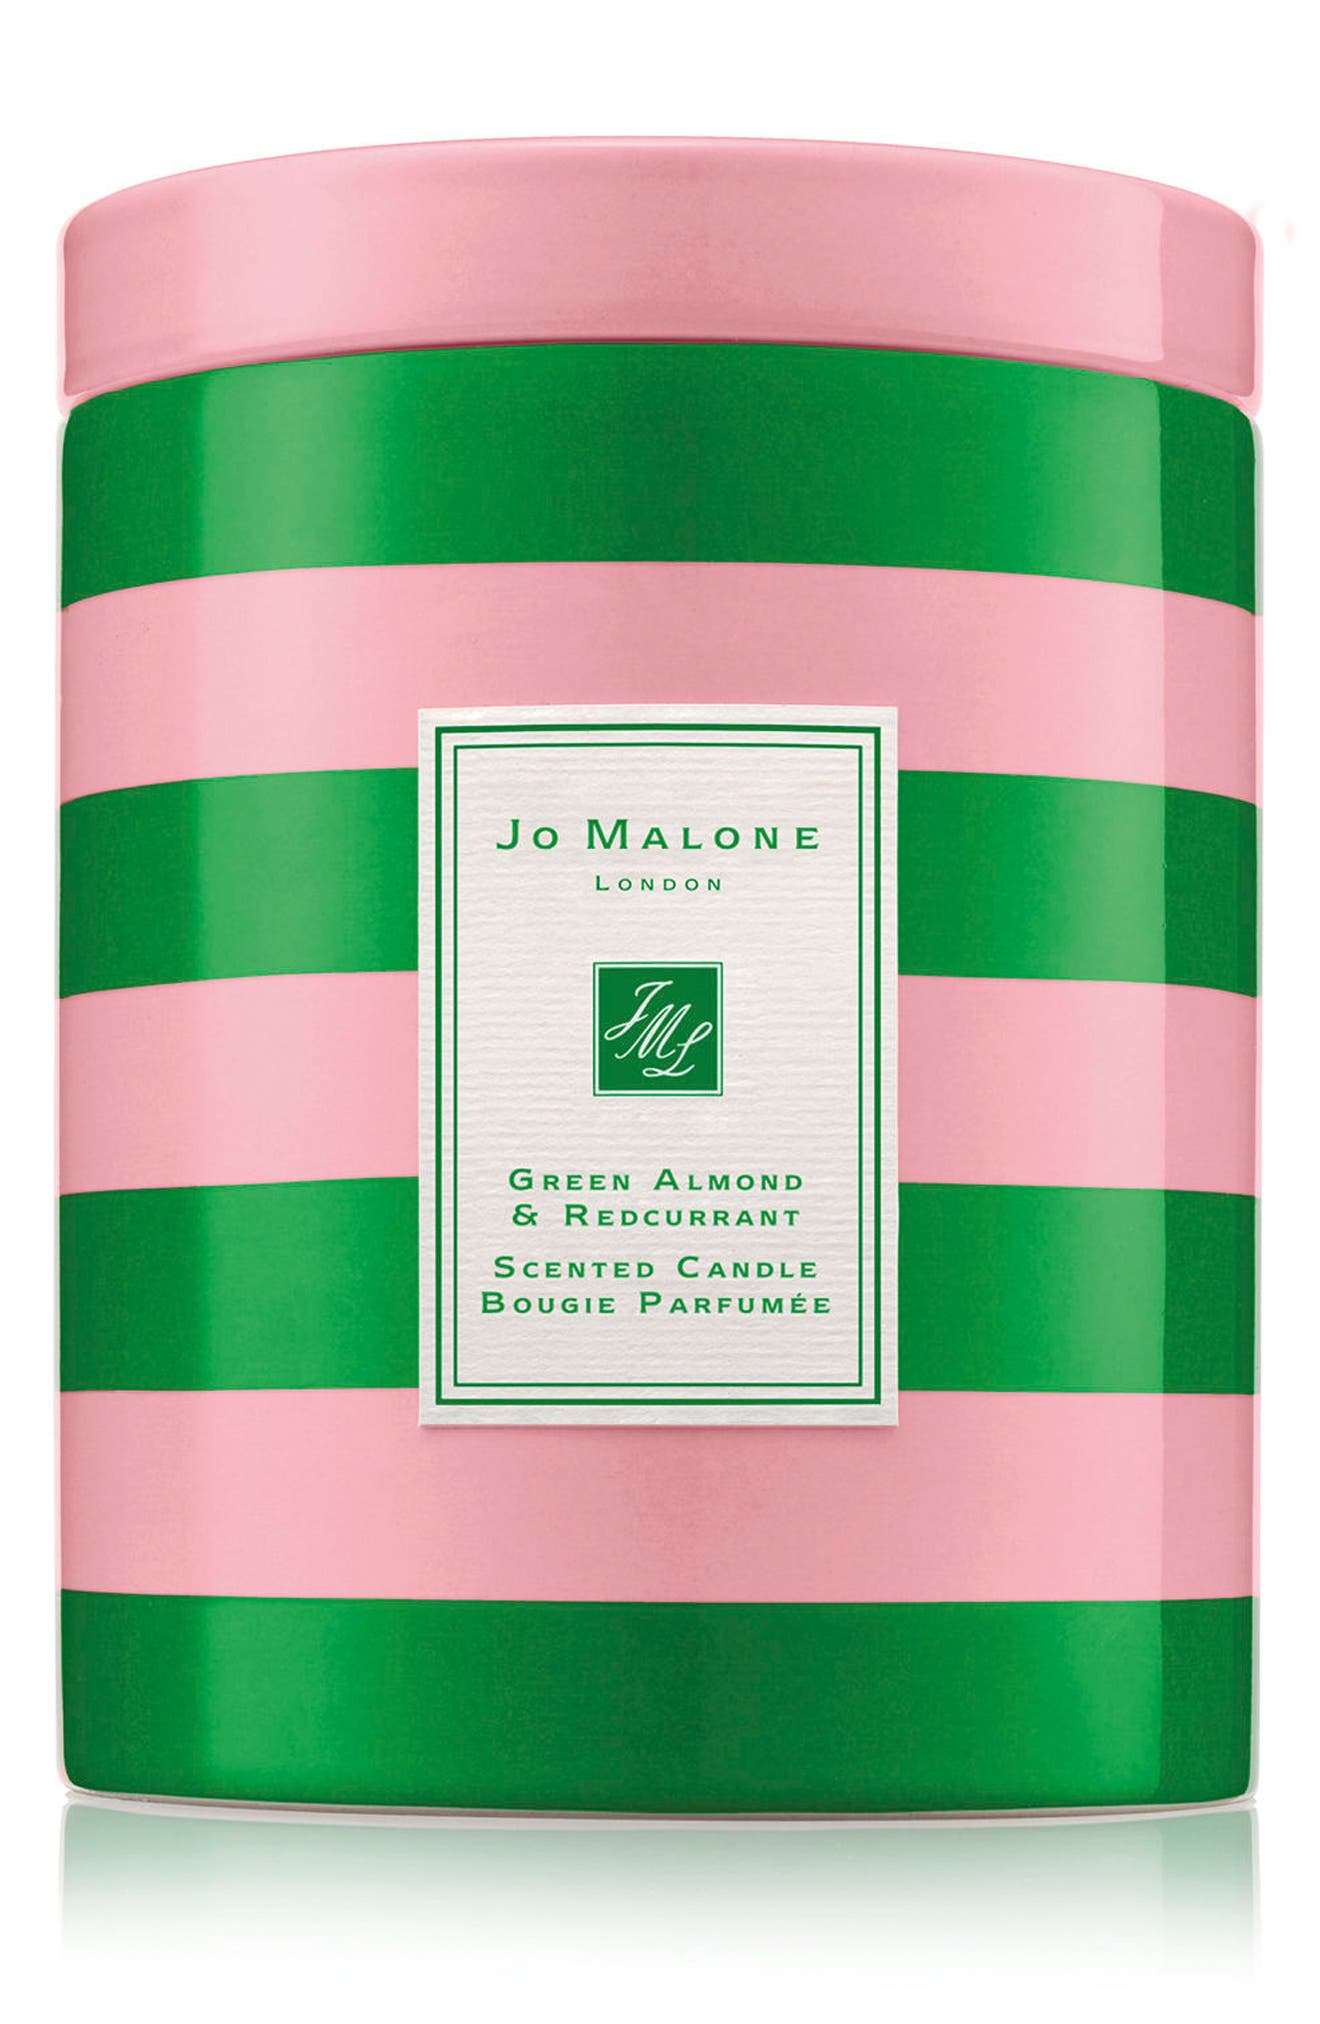 Green Almond & Redcurrant Scented Candle,                             Main thumbnail 1, color,                             No Color